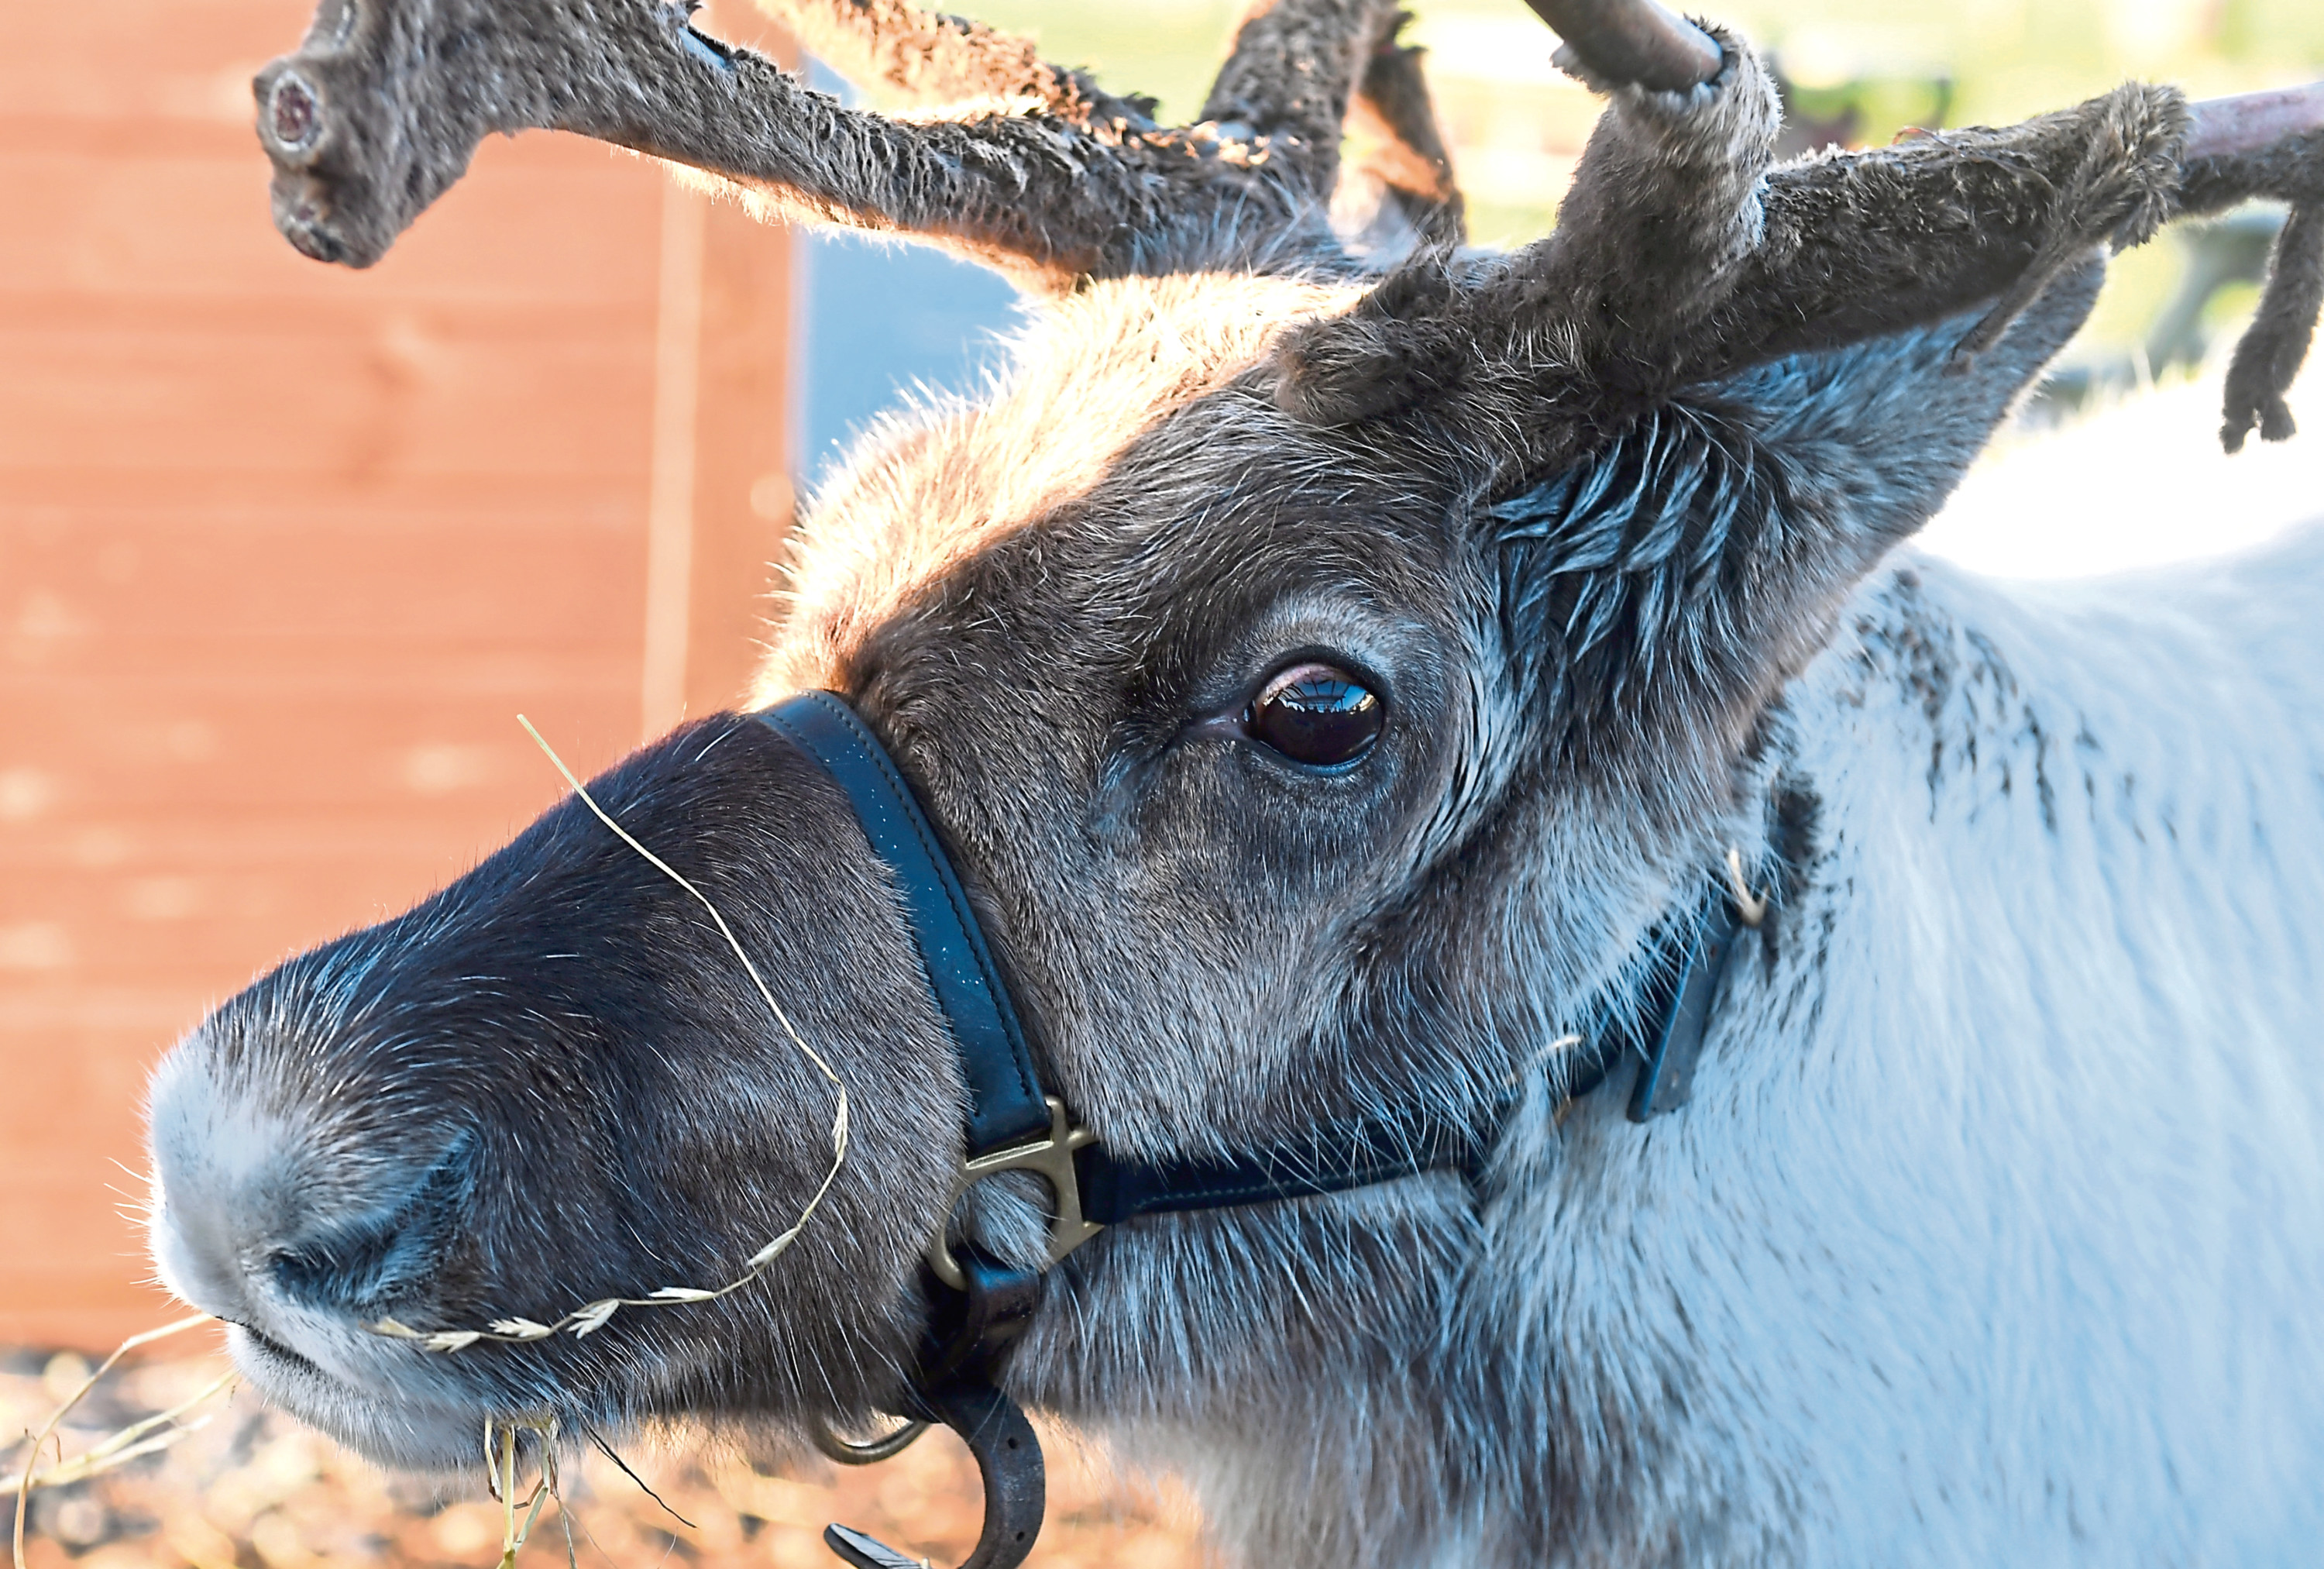 One of the reindeer at the sites